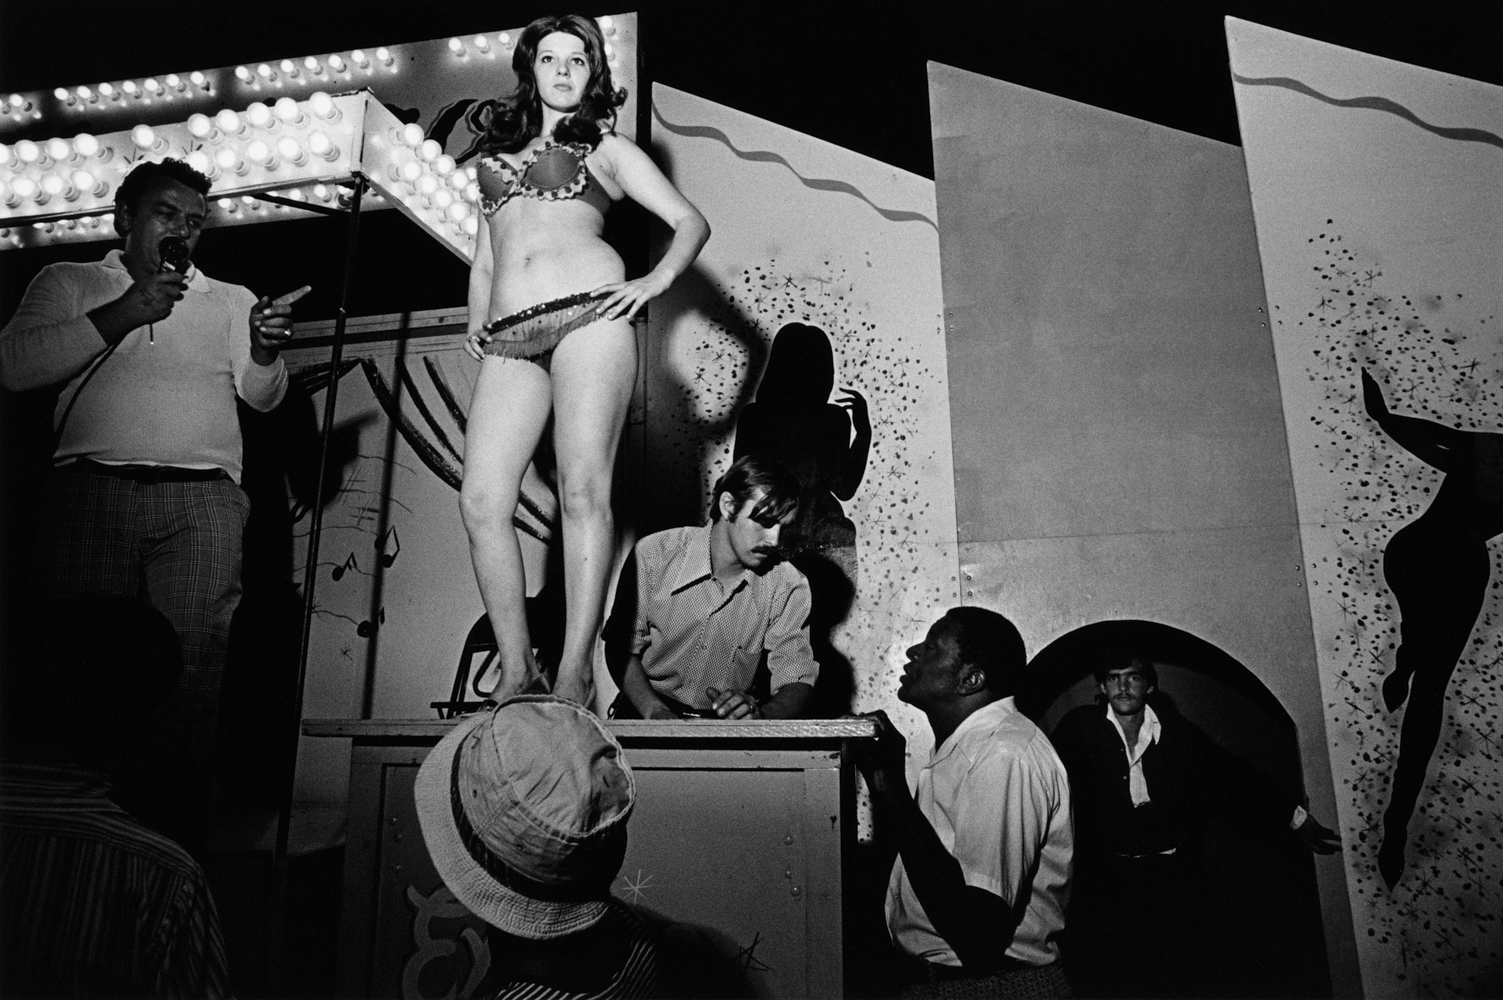 Lena on the Bally Box, Essex Junction, Vermont, 1973.  From Carnival Strippers © Susan Meiselas/Magnum Photos